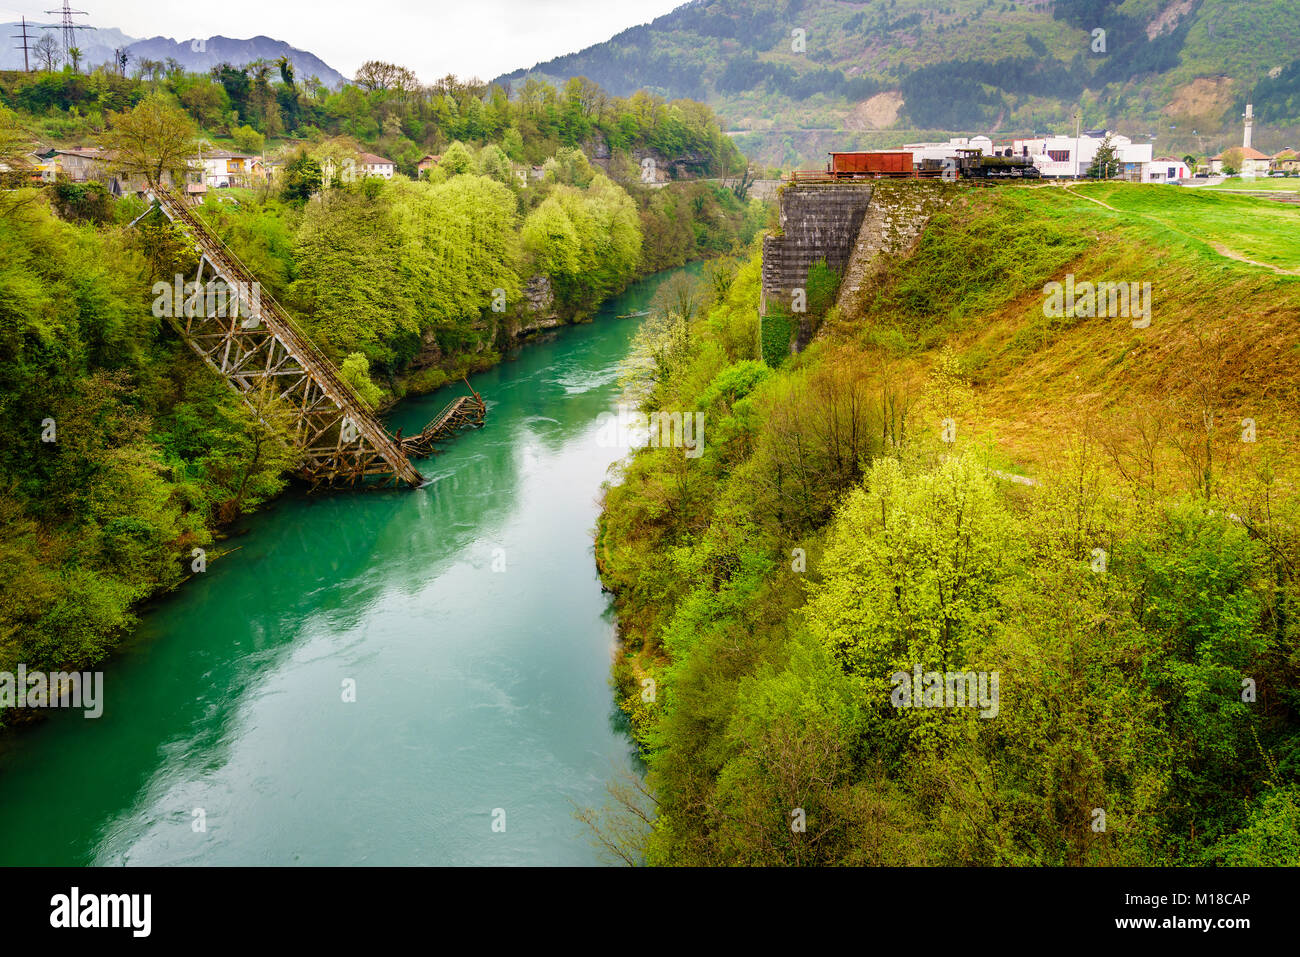 Railway bridge destroyed during Second World War in Jablanica, Bosnia and Herzegovina - Stock Image